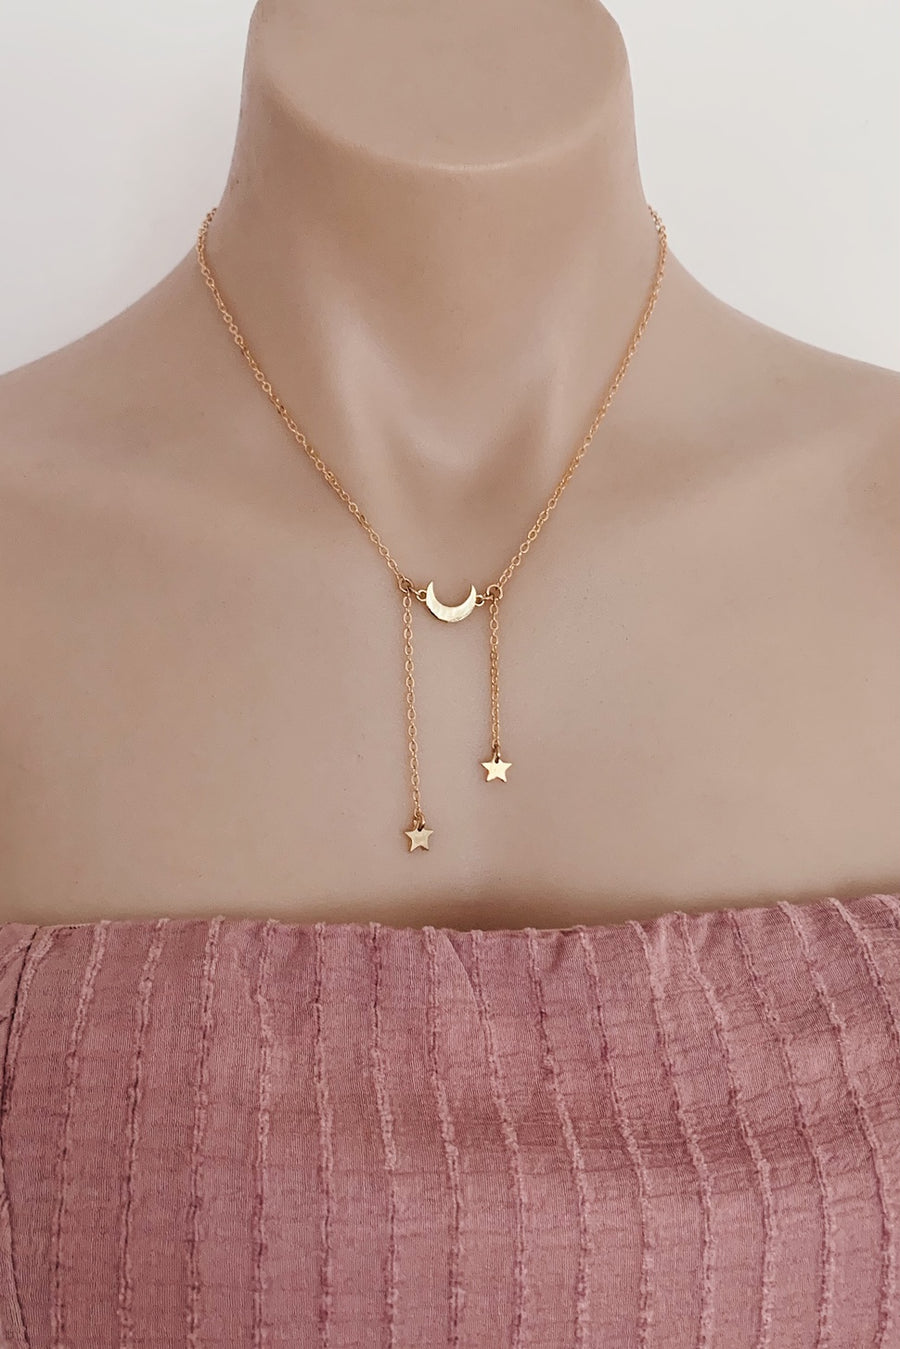 Kalisi Necklace in Gold